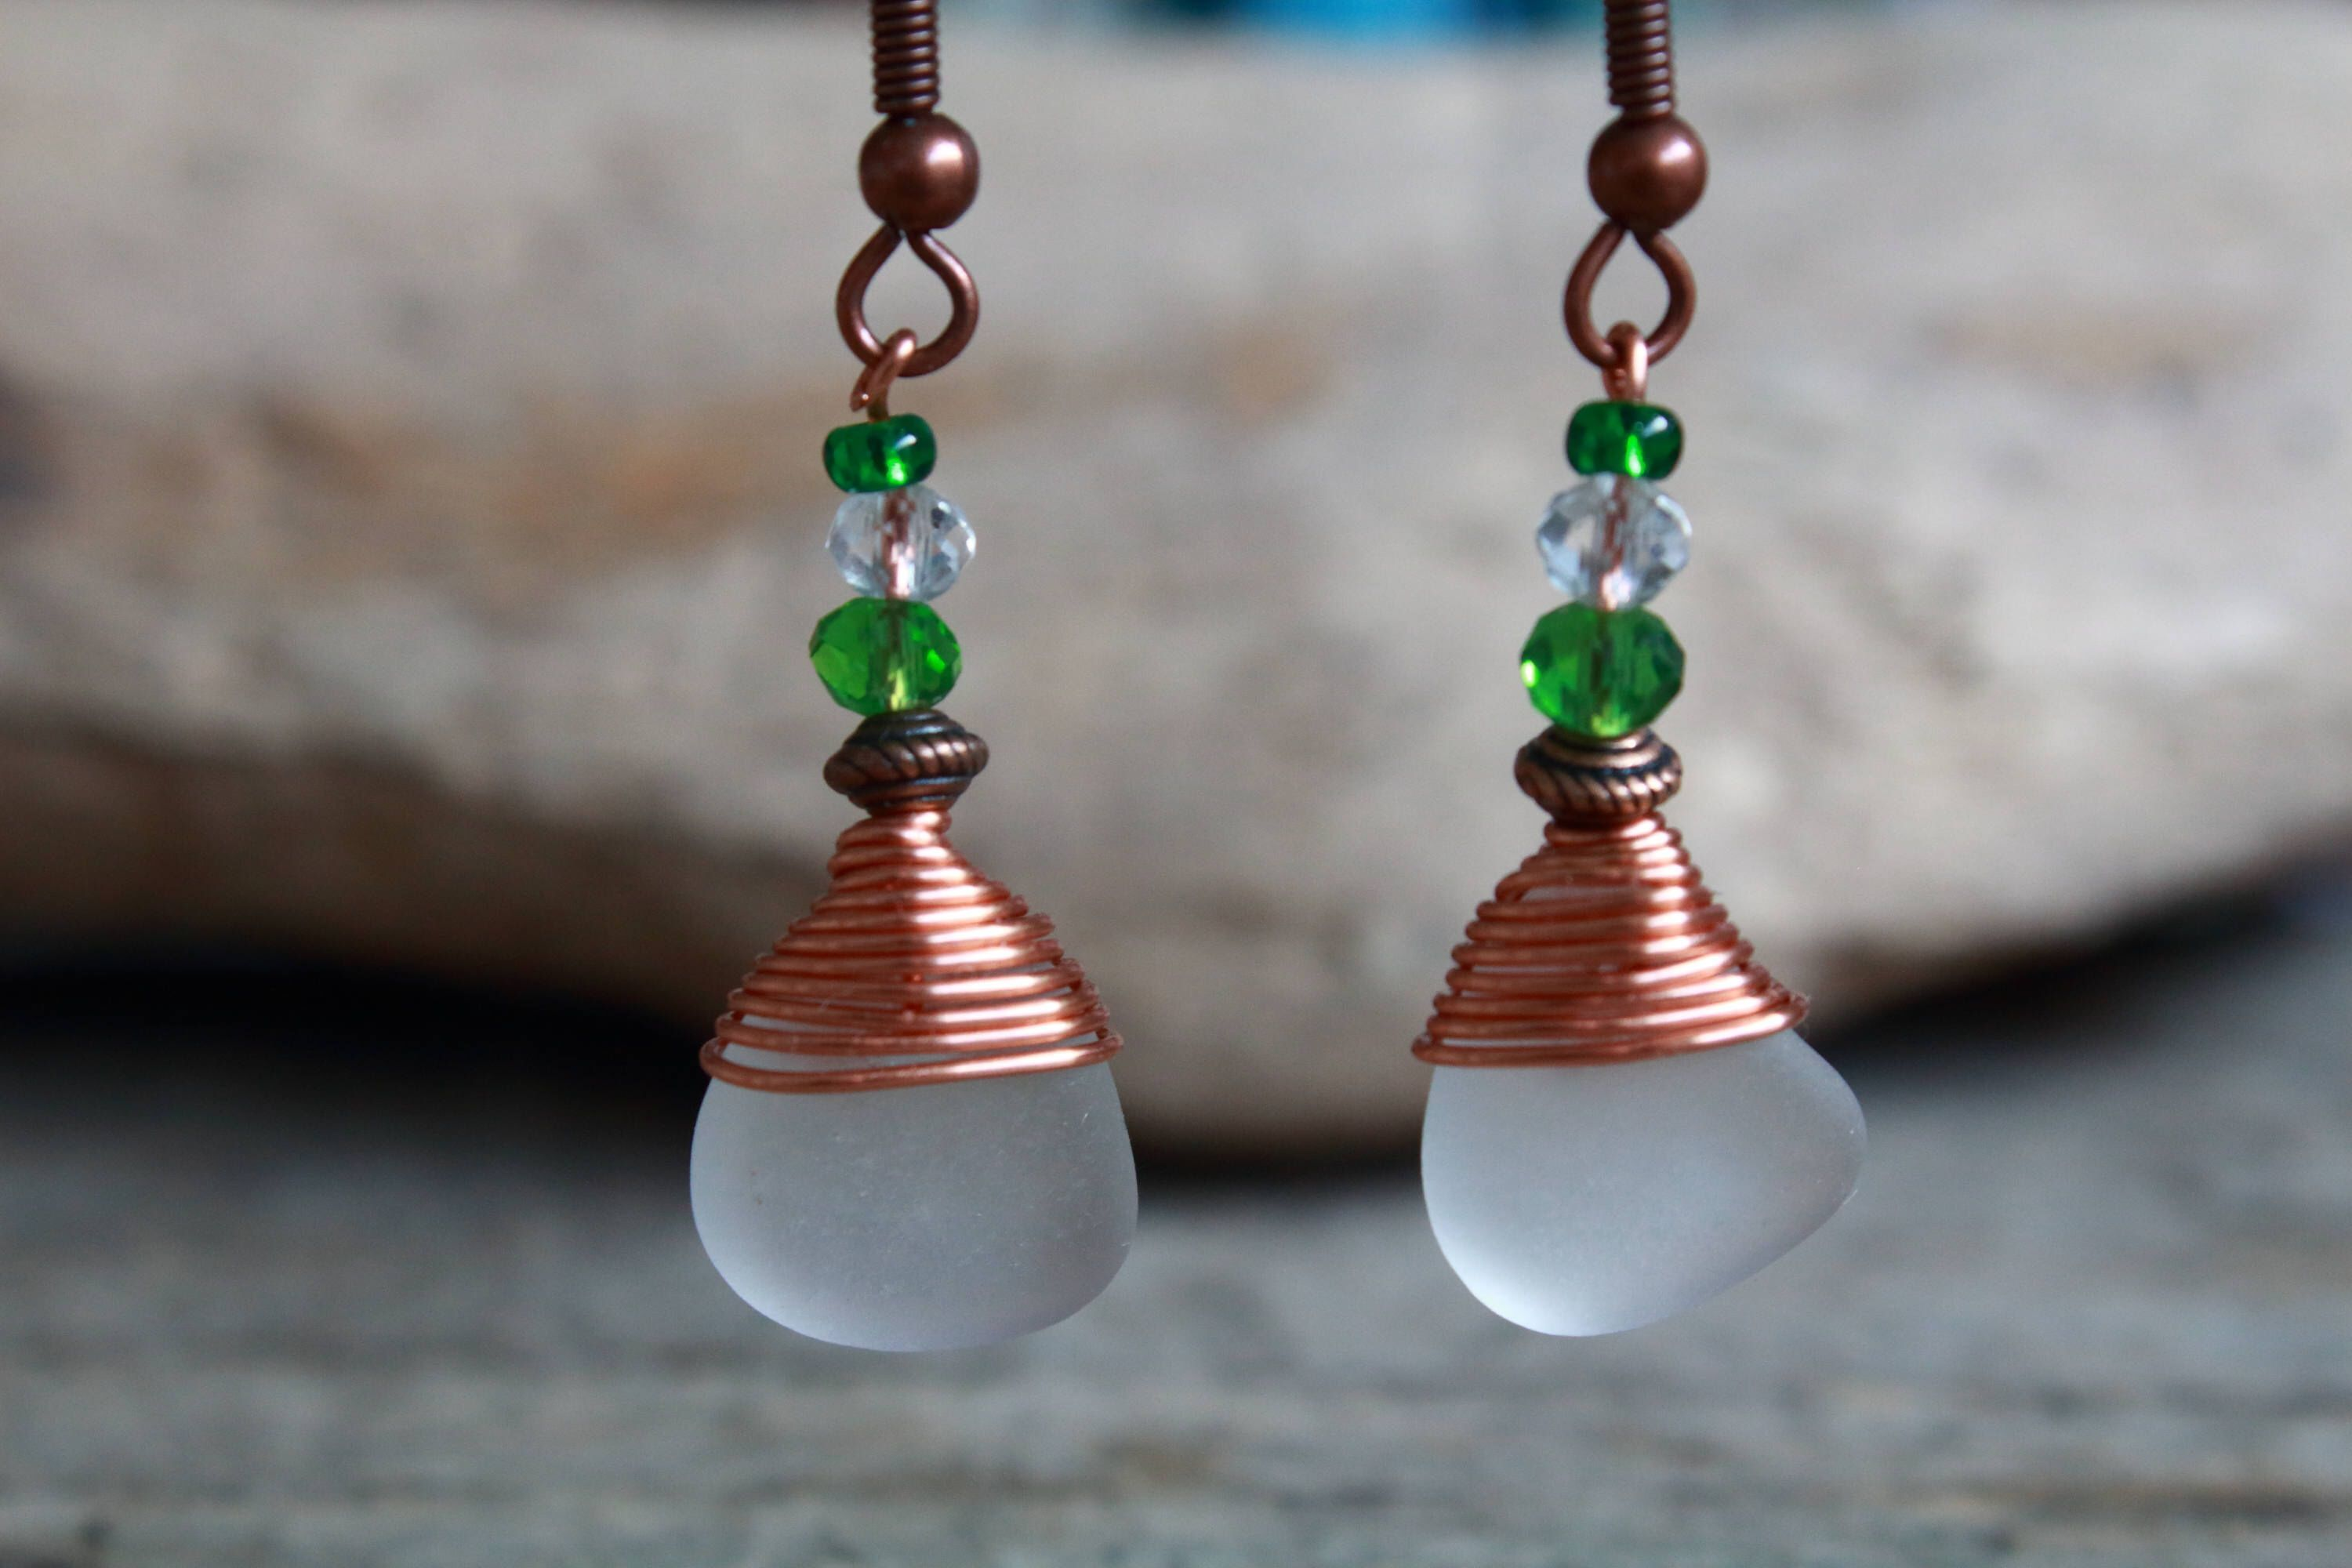 Irish Sea Glass Earrings, St Patricks Day, Beaded Drop Earrings, Sea Glass Jewelry, Sea Lover Gift, Irish Gifts, Boho Style Earrings, Ocean #irishsea Irish Sea Glass Earrings These delicate drop earrings are made from frosted white genuine Irish sea glass, complimented by sparkling glass beads and carefully wrapped in bare copper wire finished with antique style copper French hooks. The perfect unique boho chic accessory to carry a piece of the Irish Sea with you always! Fancy some different lad #irishsea